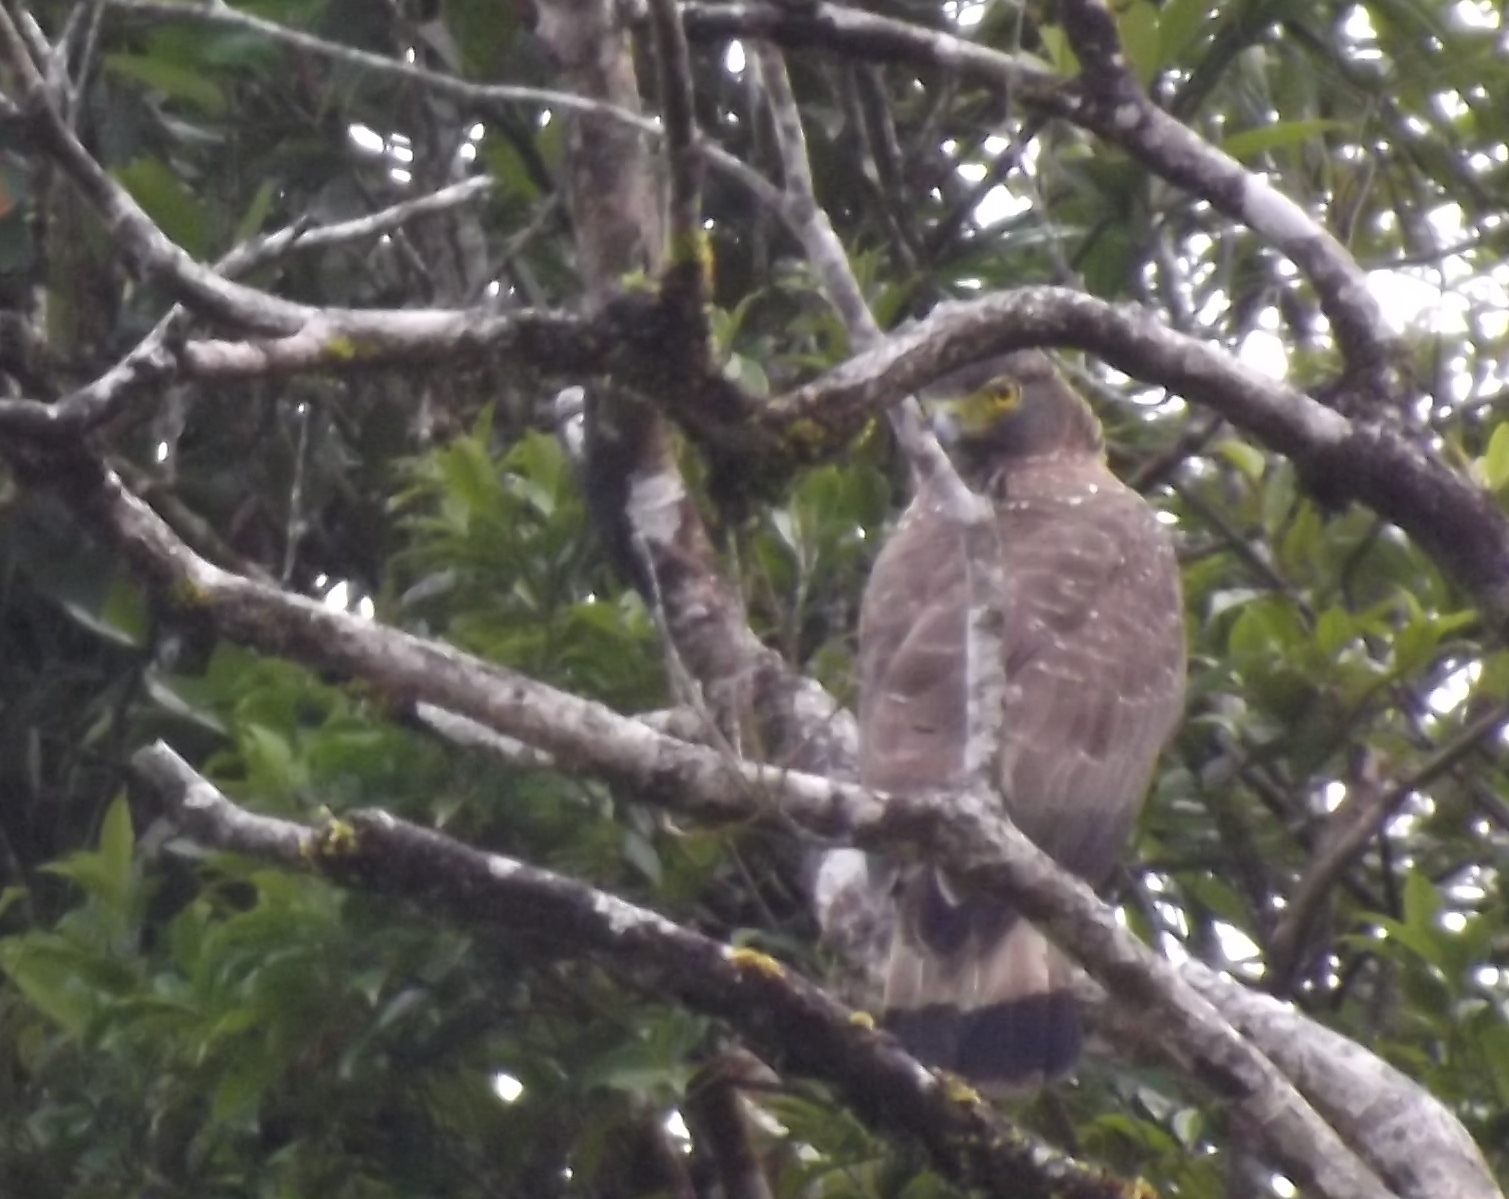 Philippine Serpent Eagle, along the road to Infanta, Quezon, March, 2013. Photo by Linda Gocon.